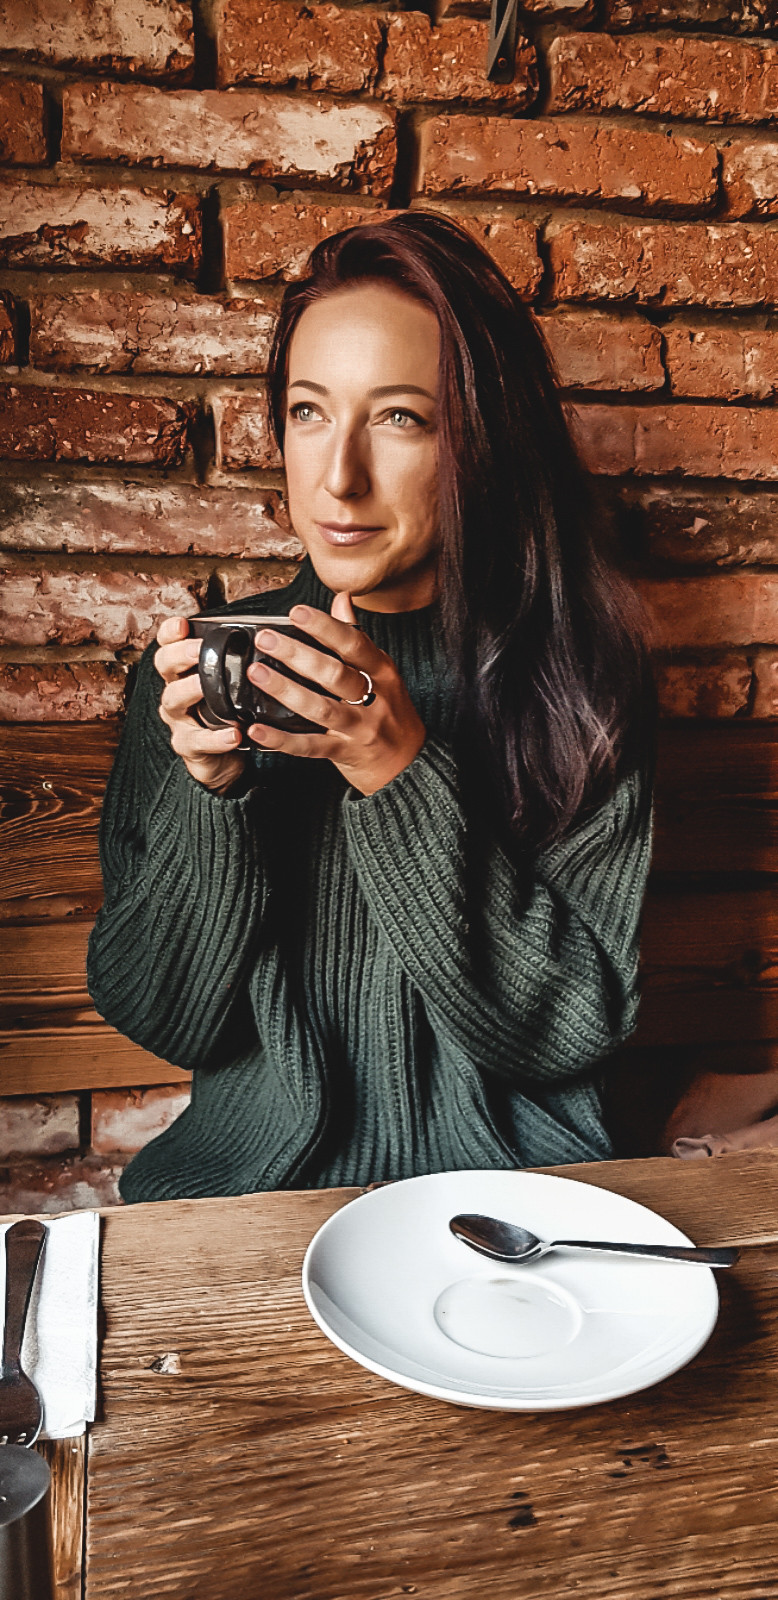 Hygge moment woman with tea